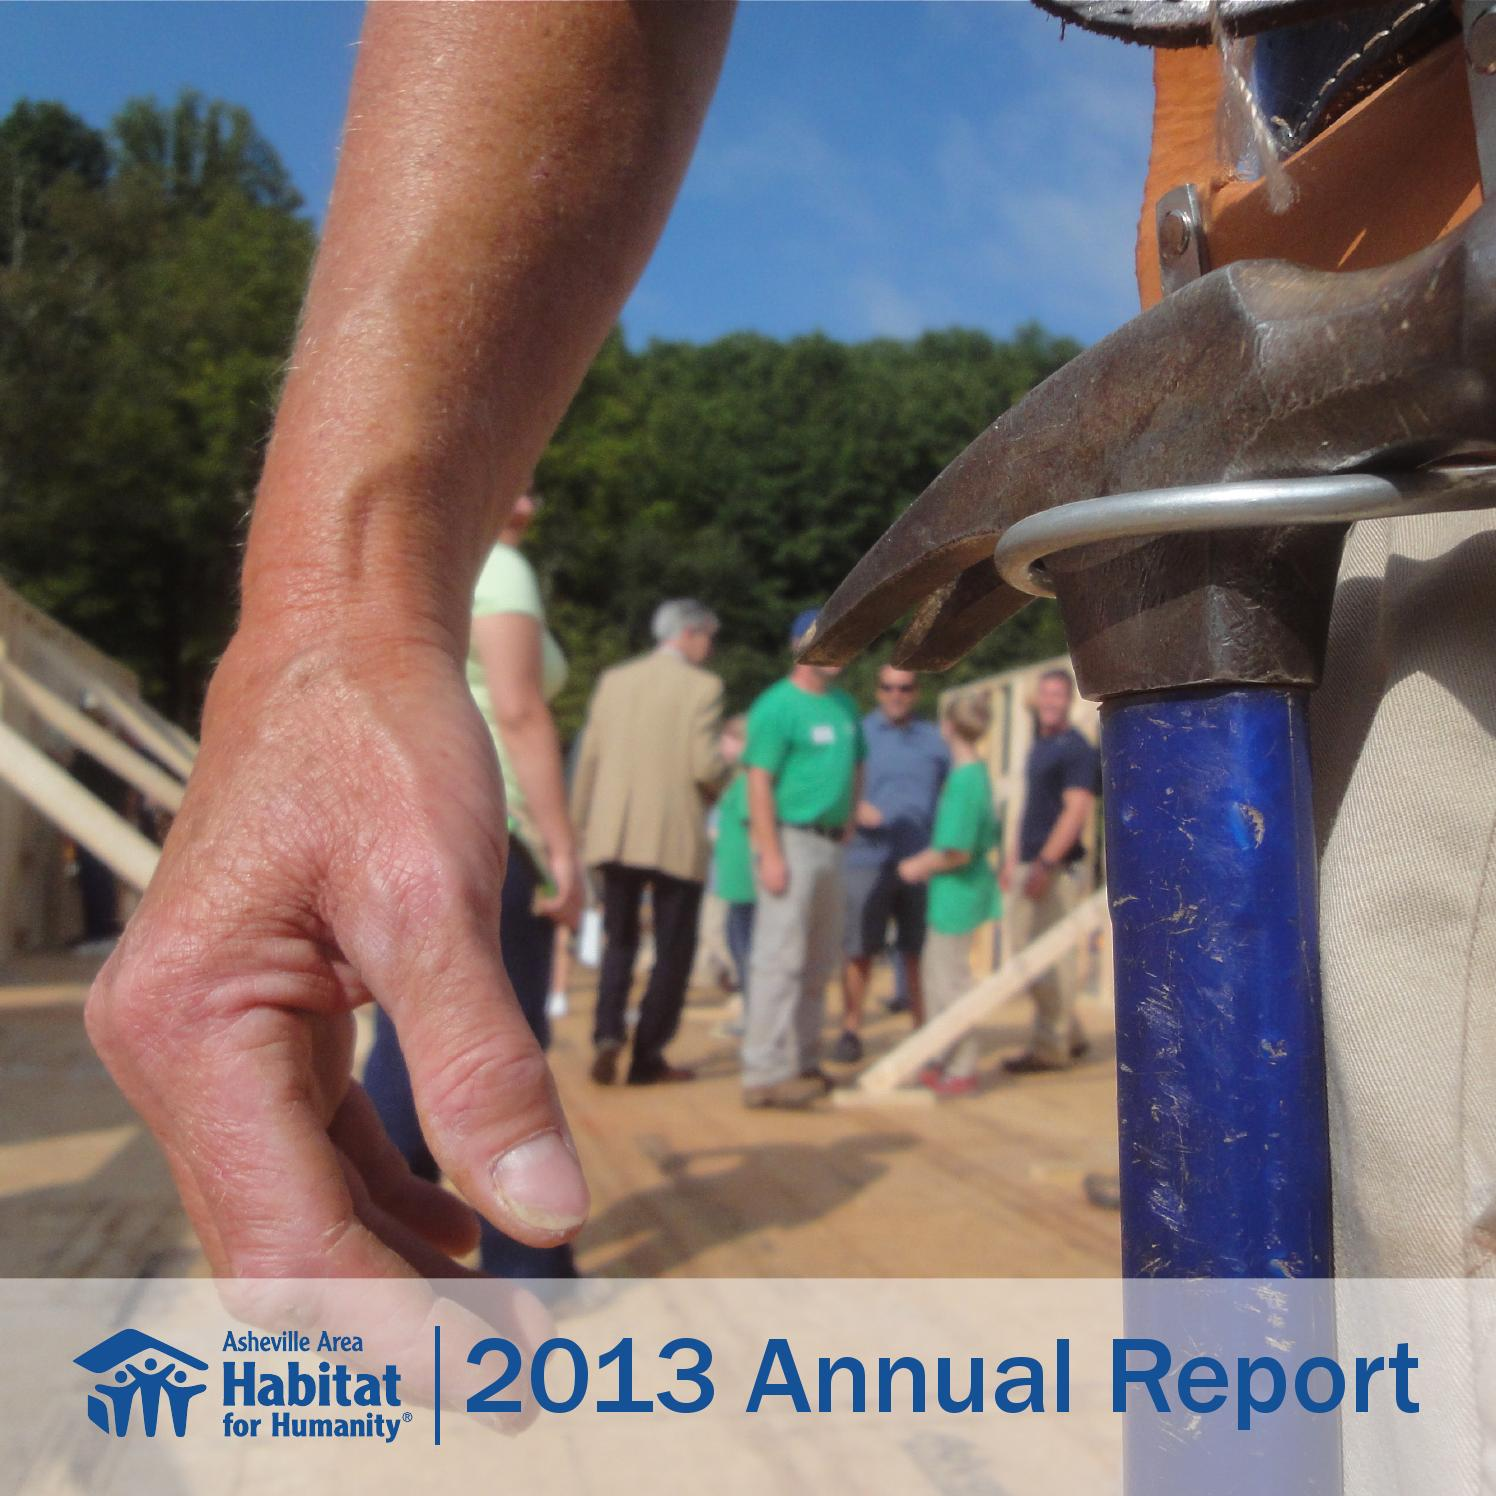 2013 annual report by asheville area habitat for humanity issuu malvernweather Images